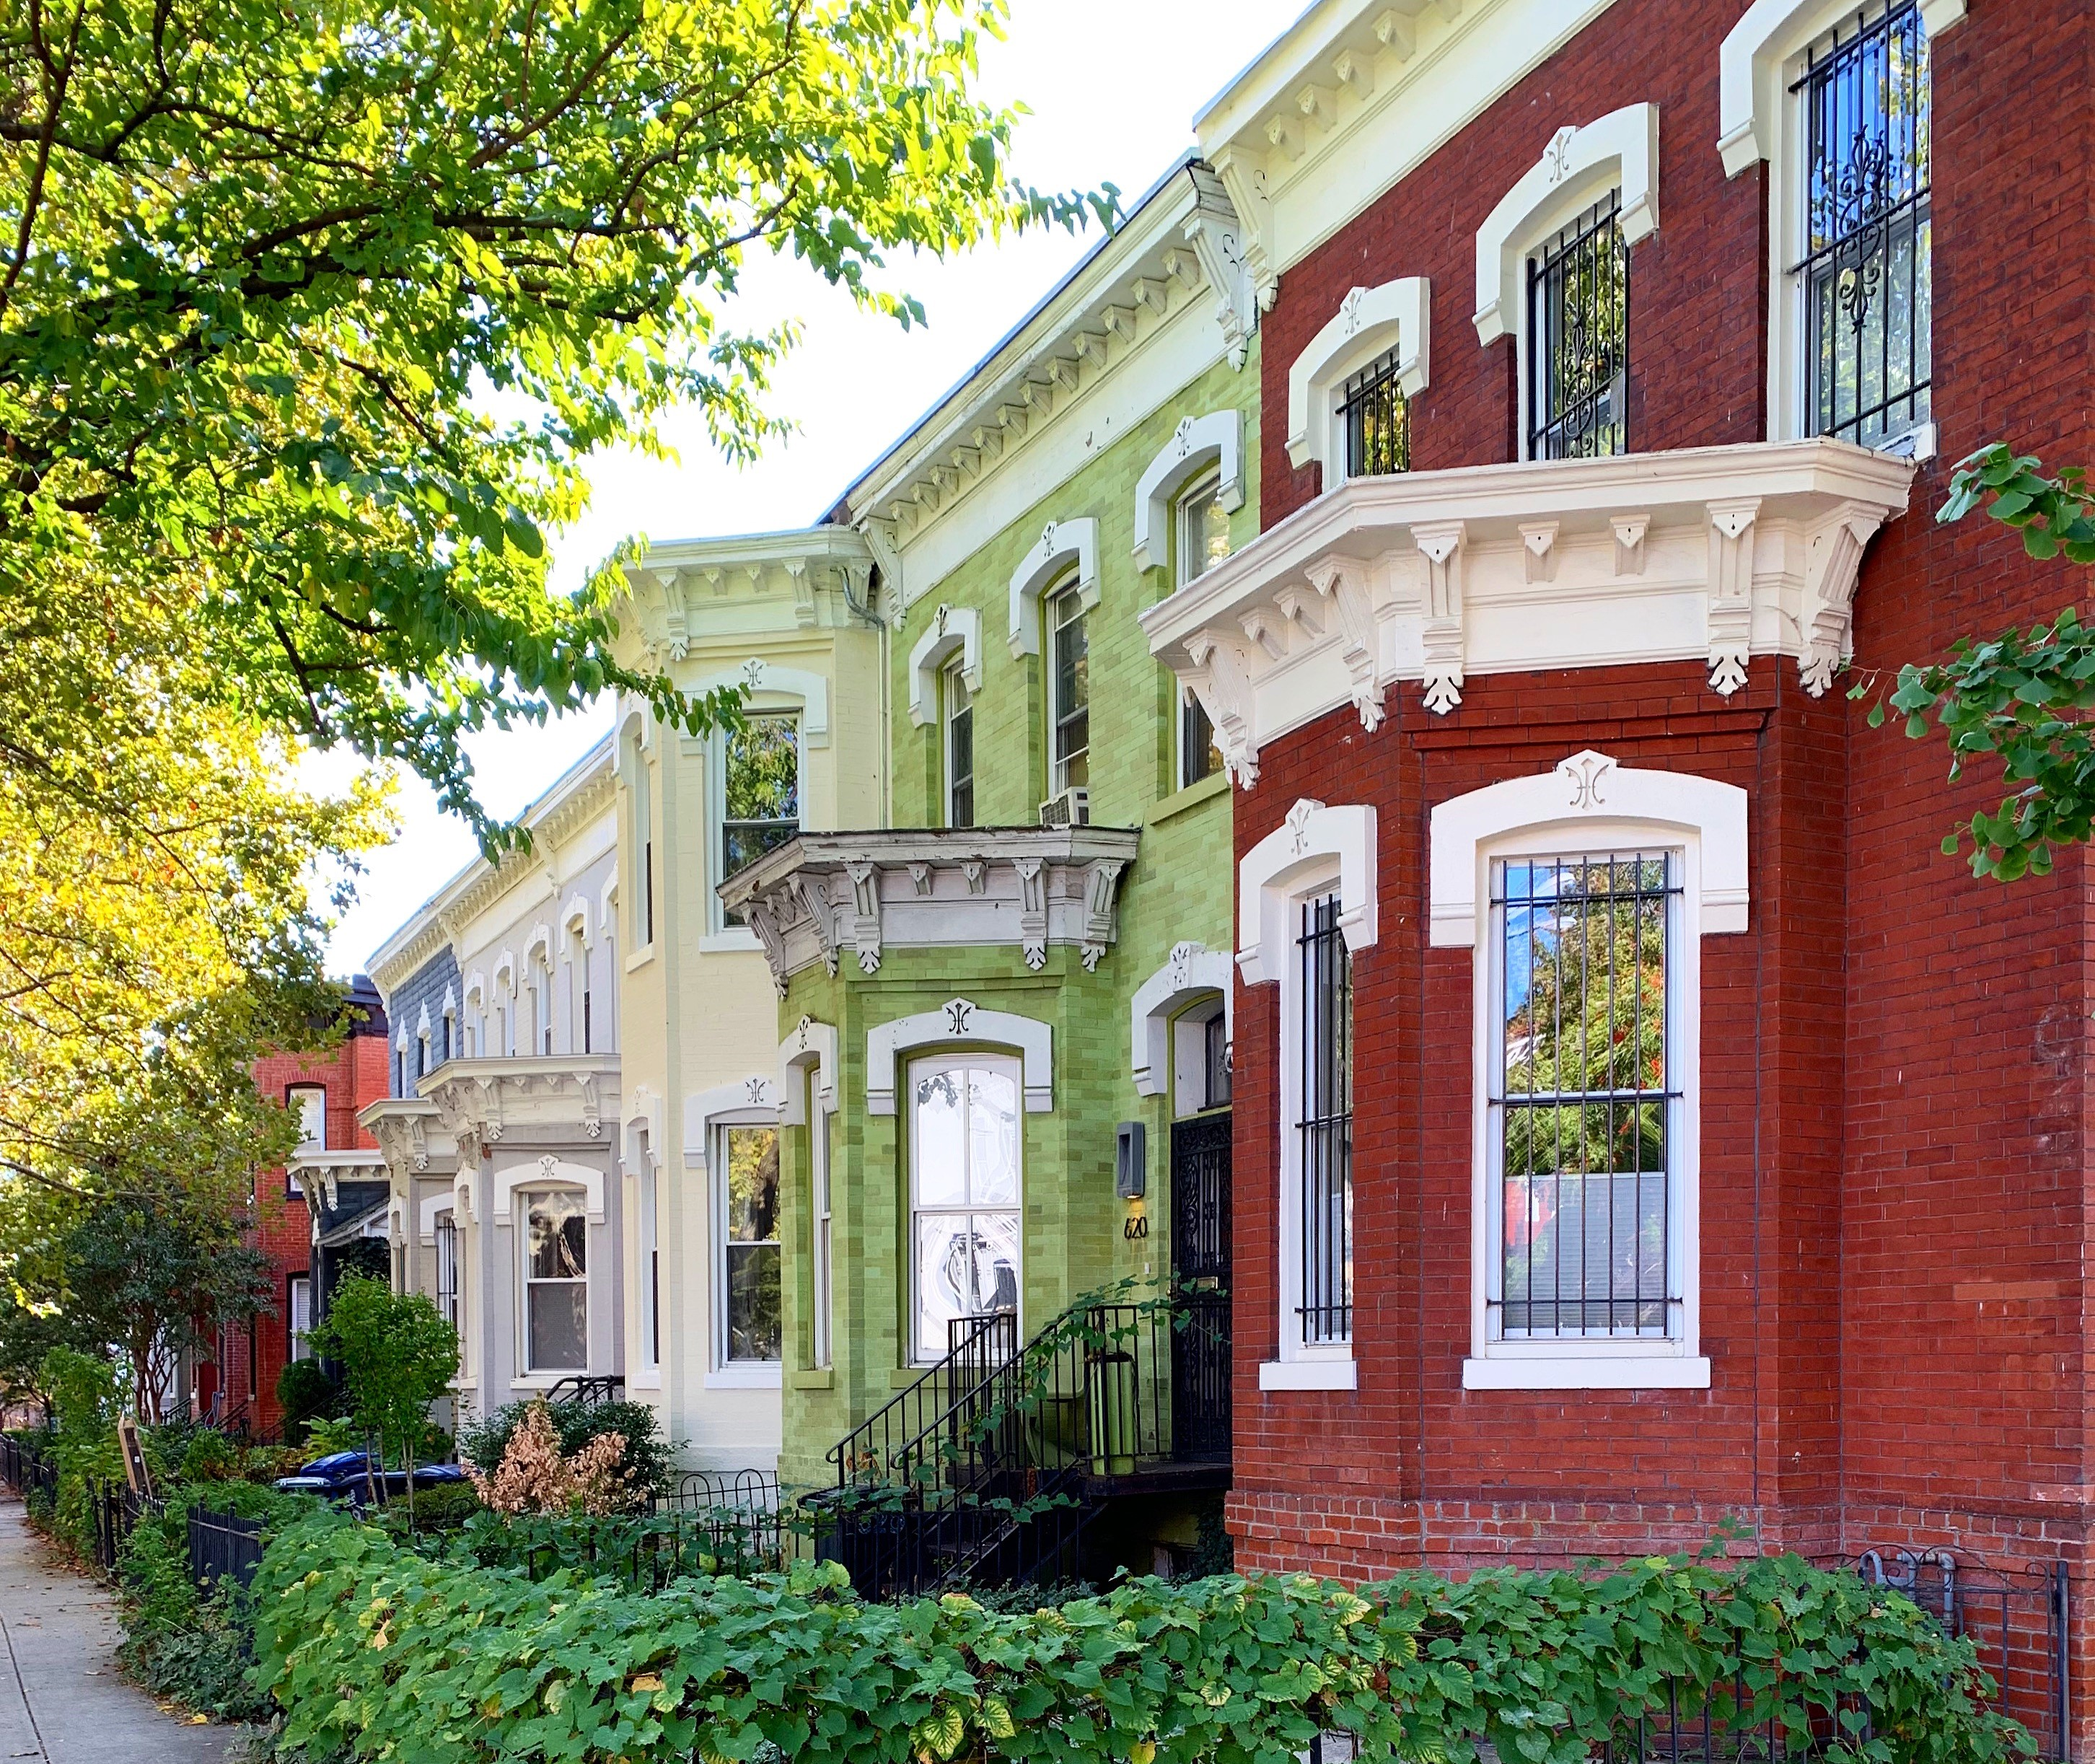 Luxury Real Estate & Homes For Sale in Shaw, Washington, DC. Marion Street NW. Artyom Shmatko Luxury Real Estate Agent